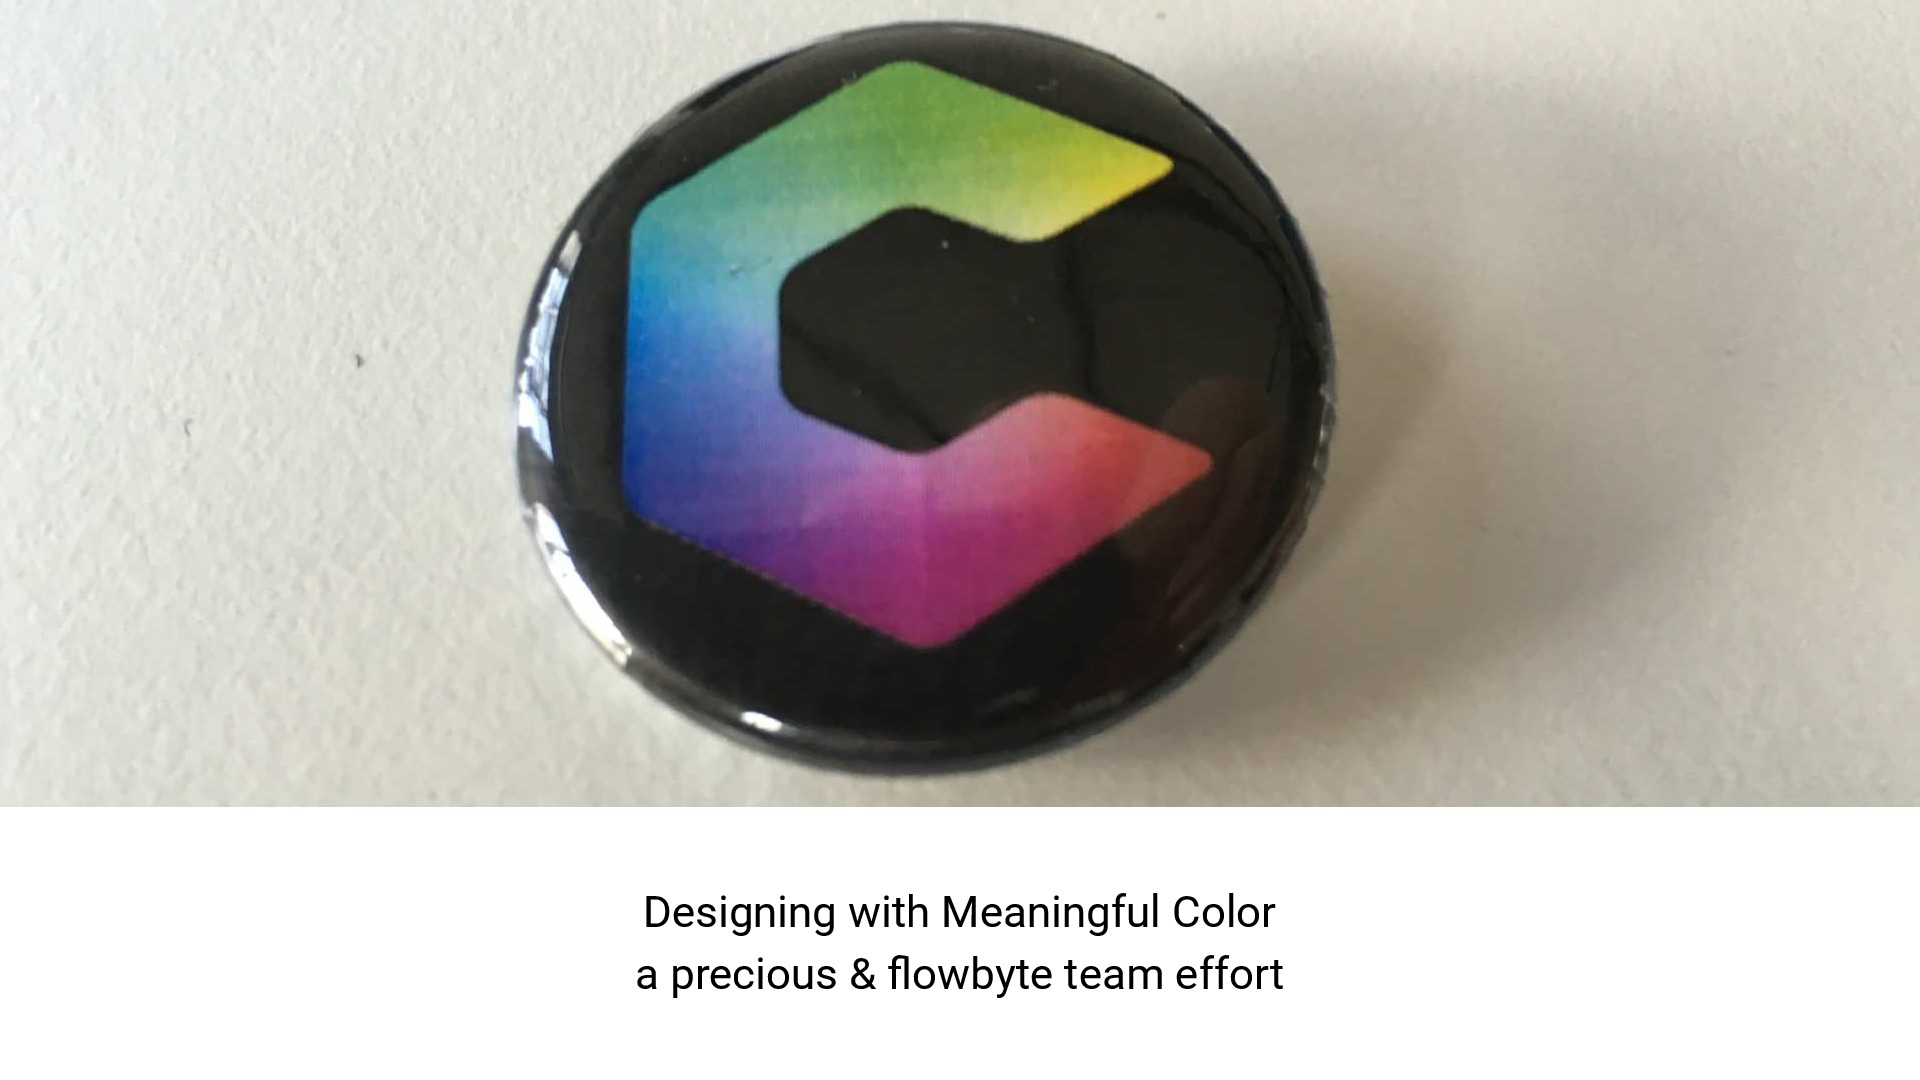 Designing with Meaningful Colors